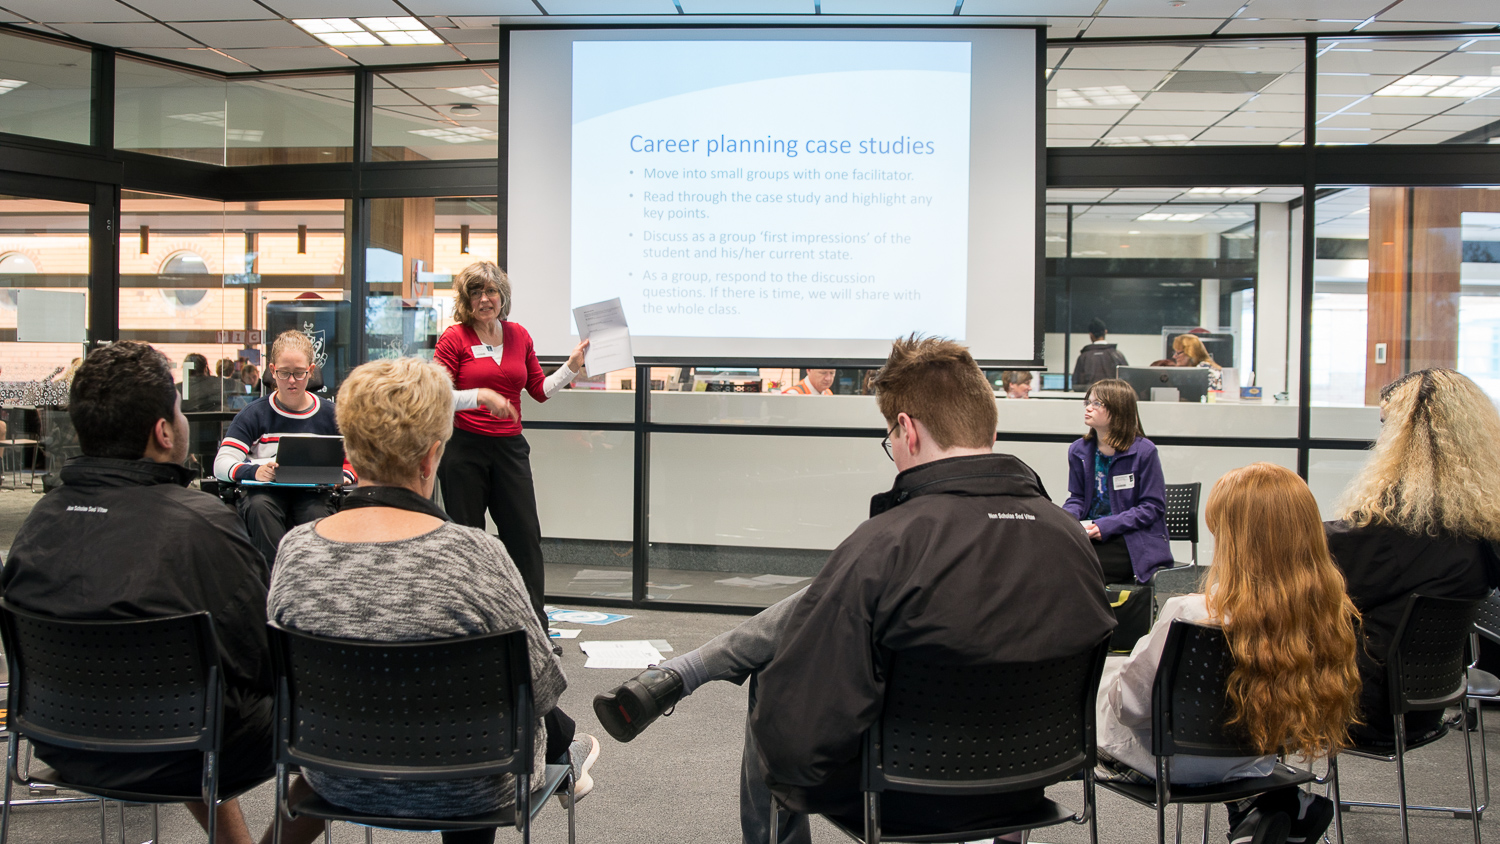 Students discuss career planning case studies